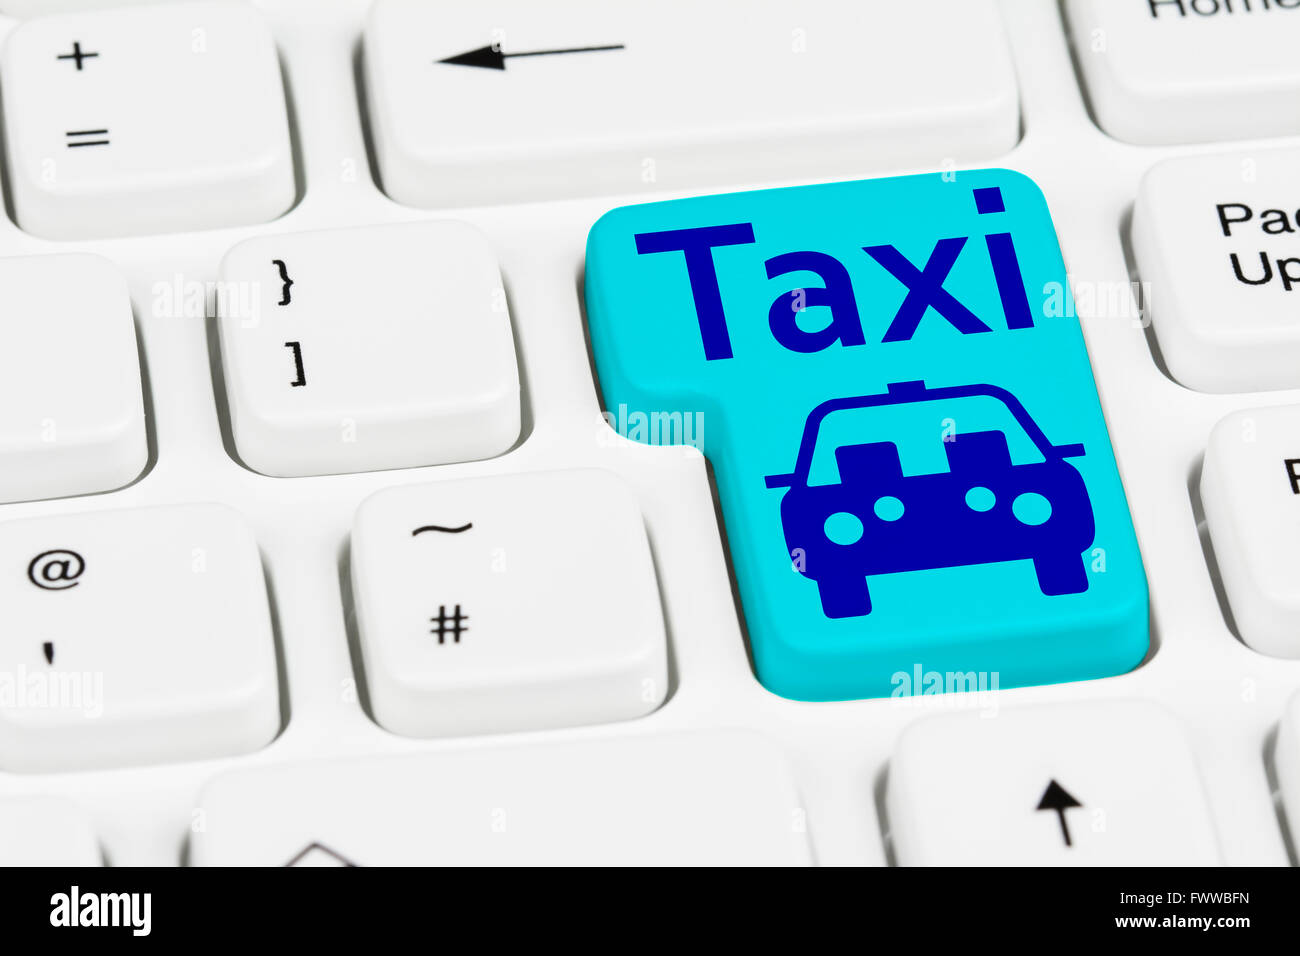 Taxi button on a computer keyboard. - Stock Image